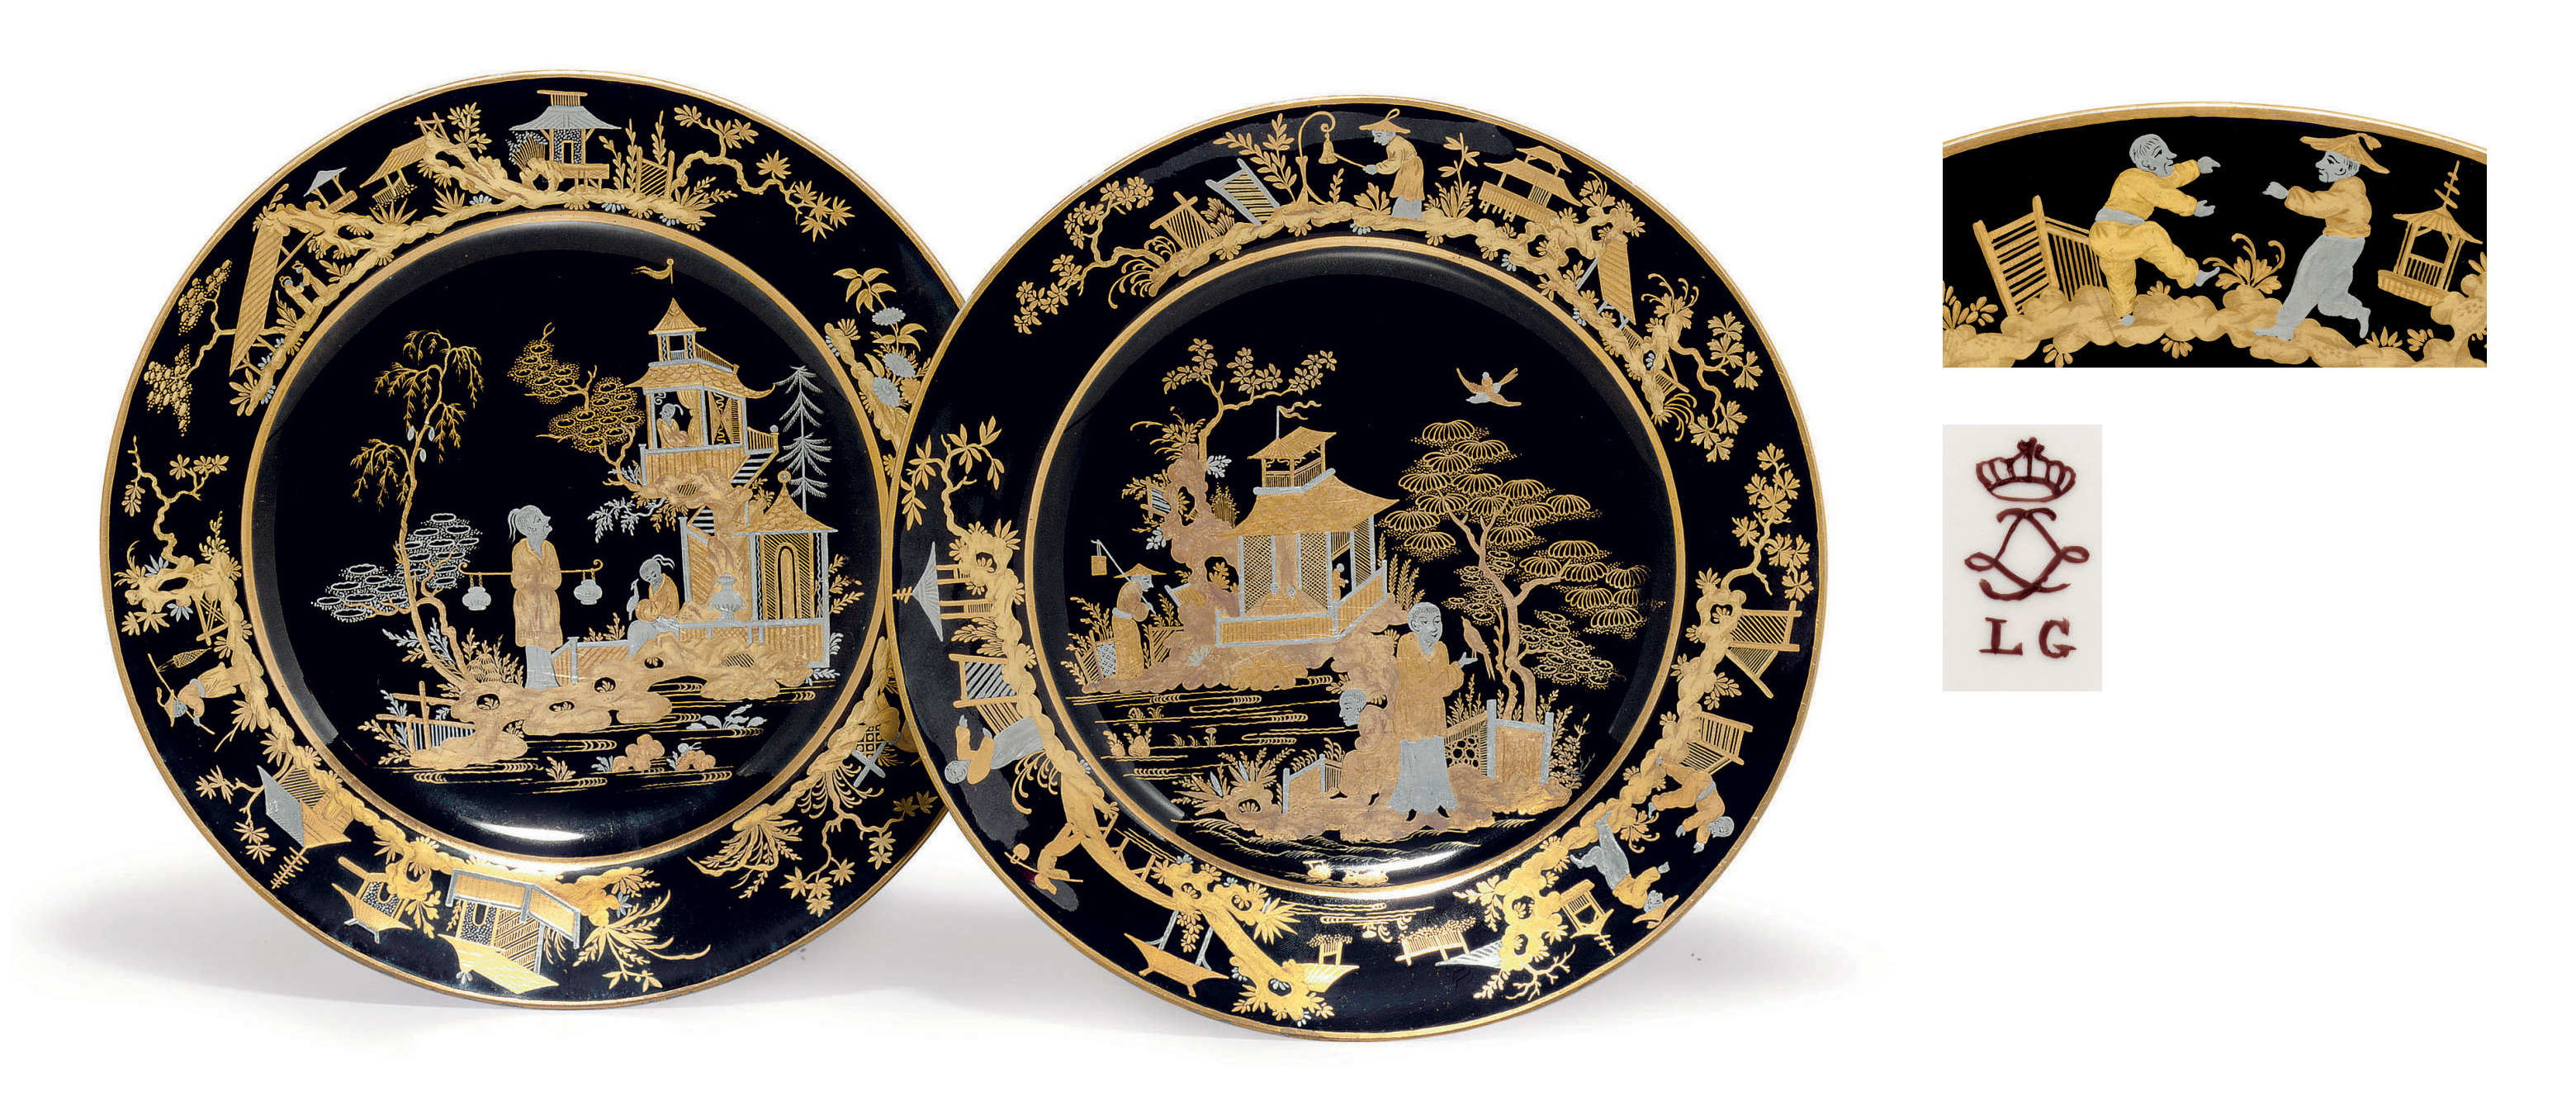 A PAIR OF SEVRES (HARD PASTE) PORCELAIN BLACK-GROUND GILT AND PLATINUM CHINOISERIE PLATES